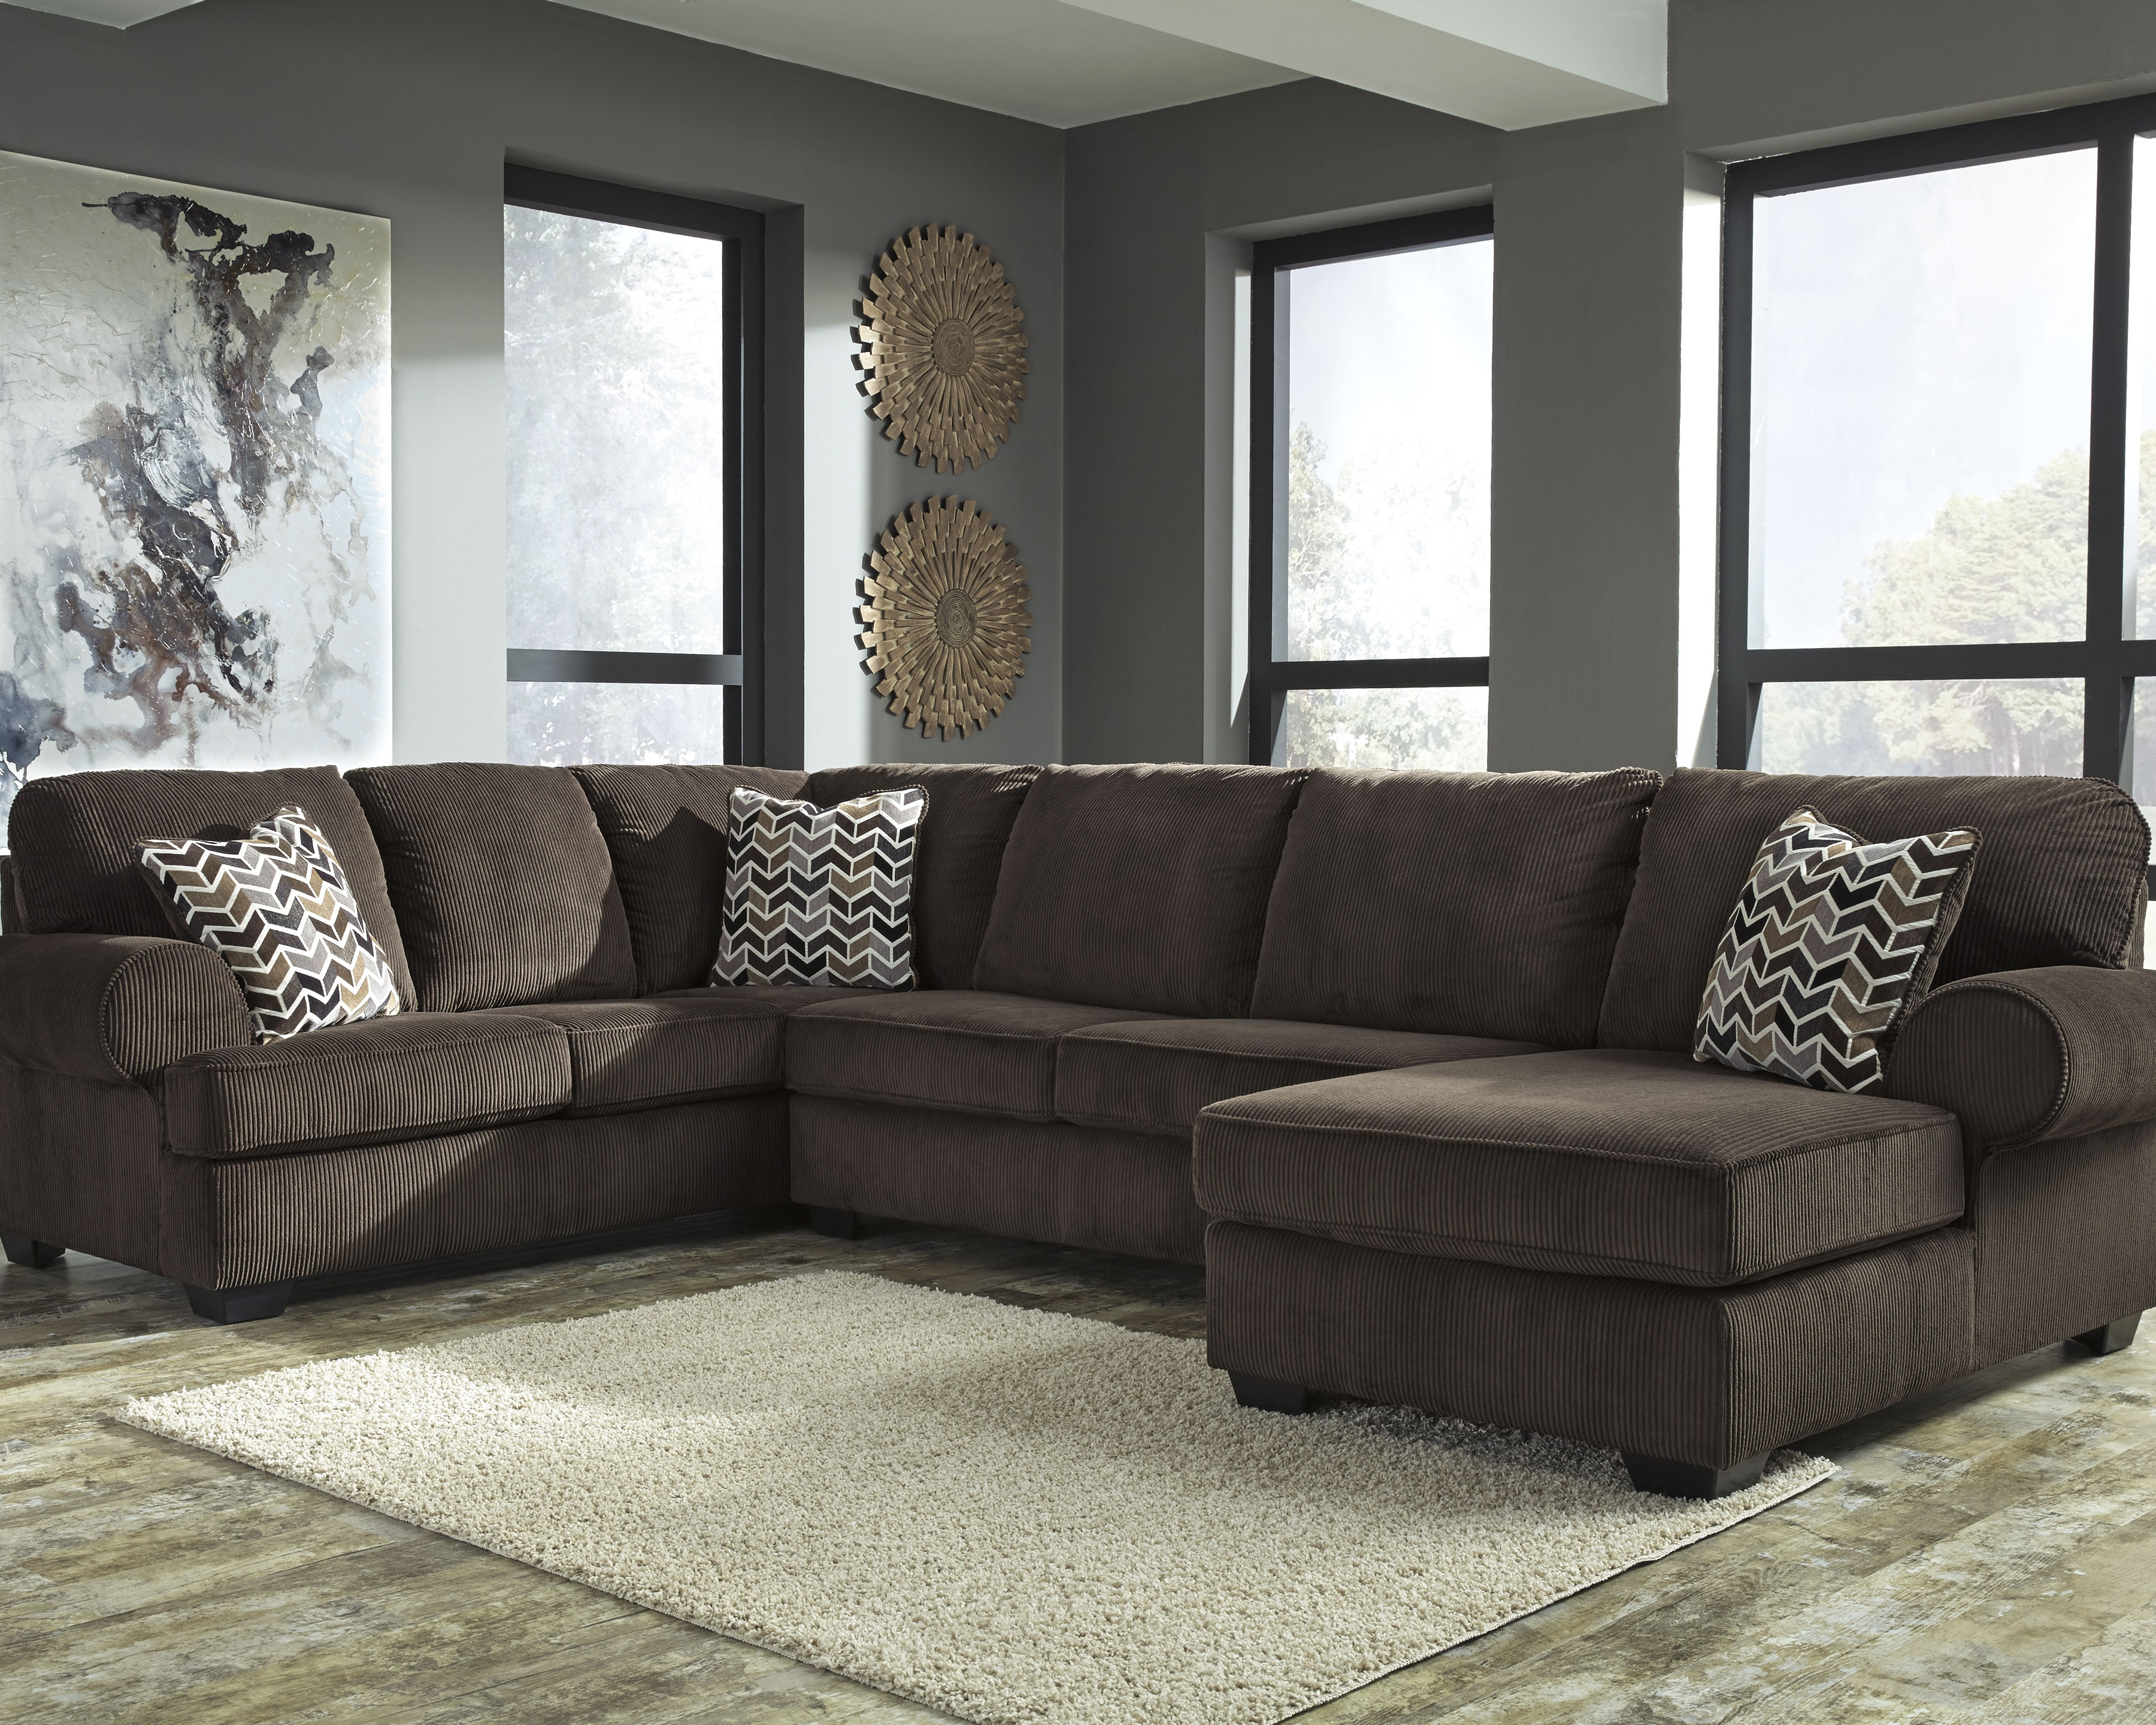 Jinllingsly 3 Piece Sectional Chocolate 3 Piece Sectional